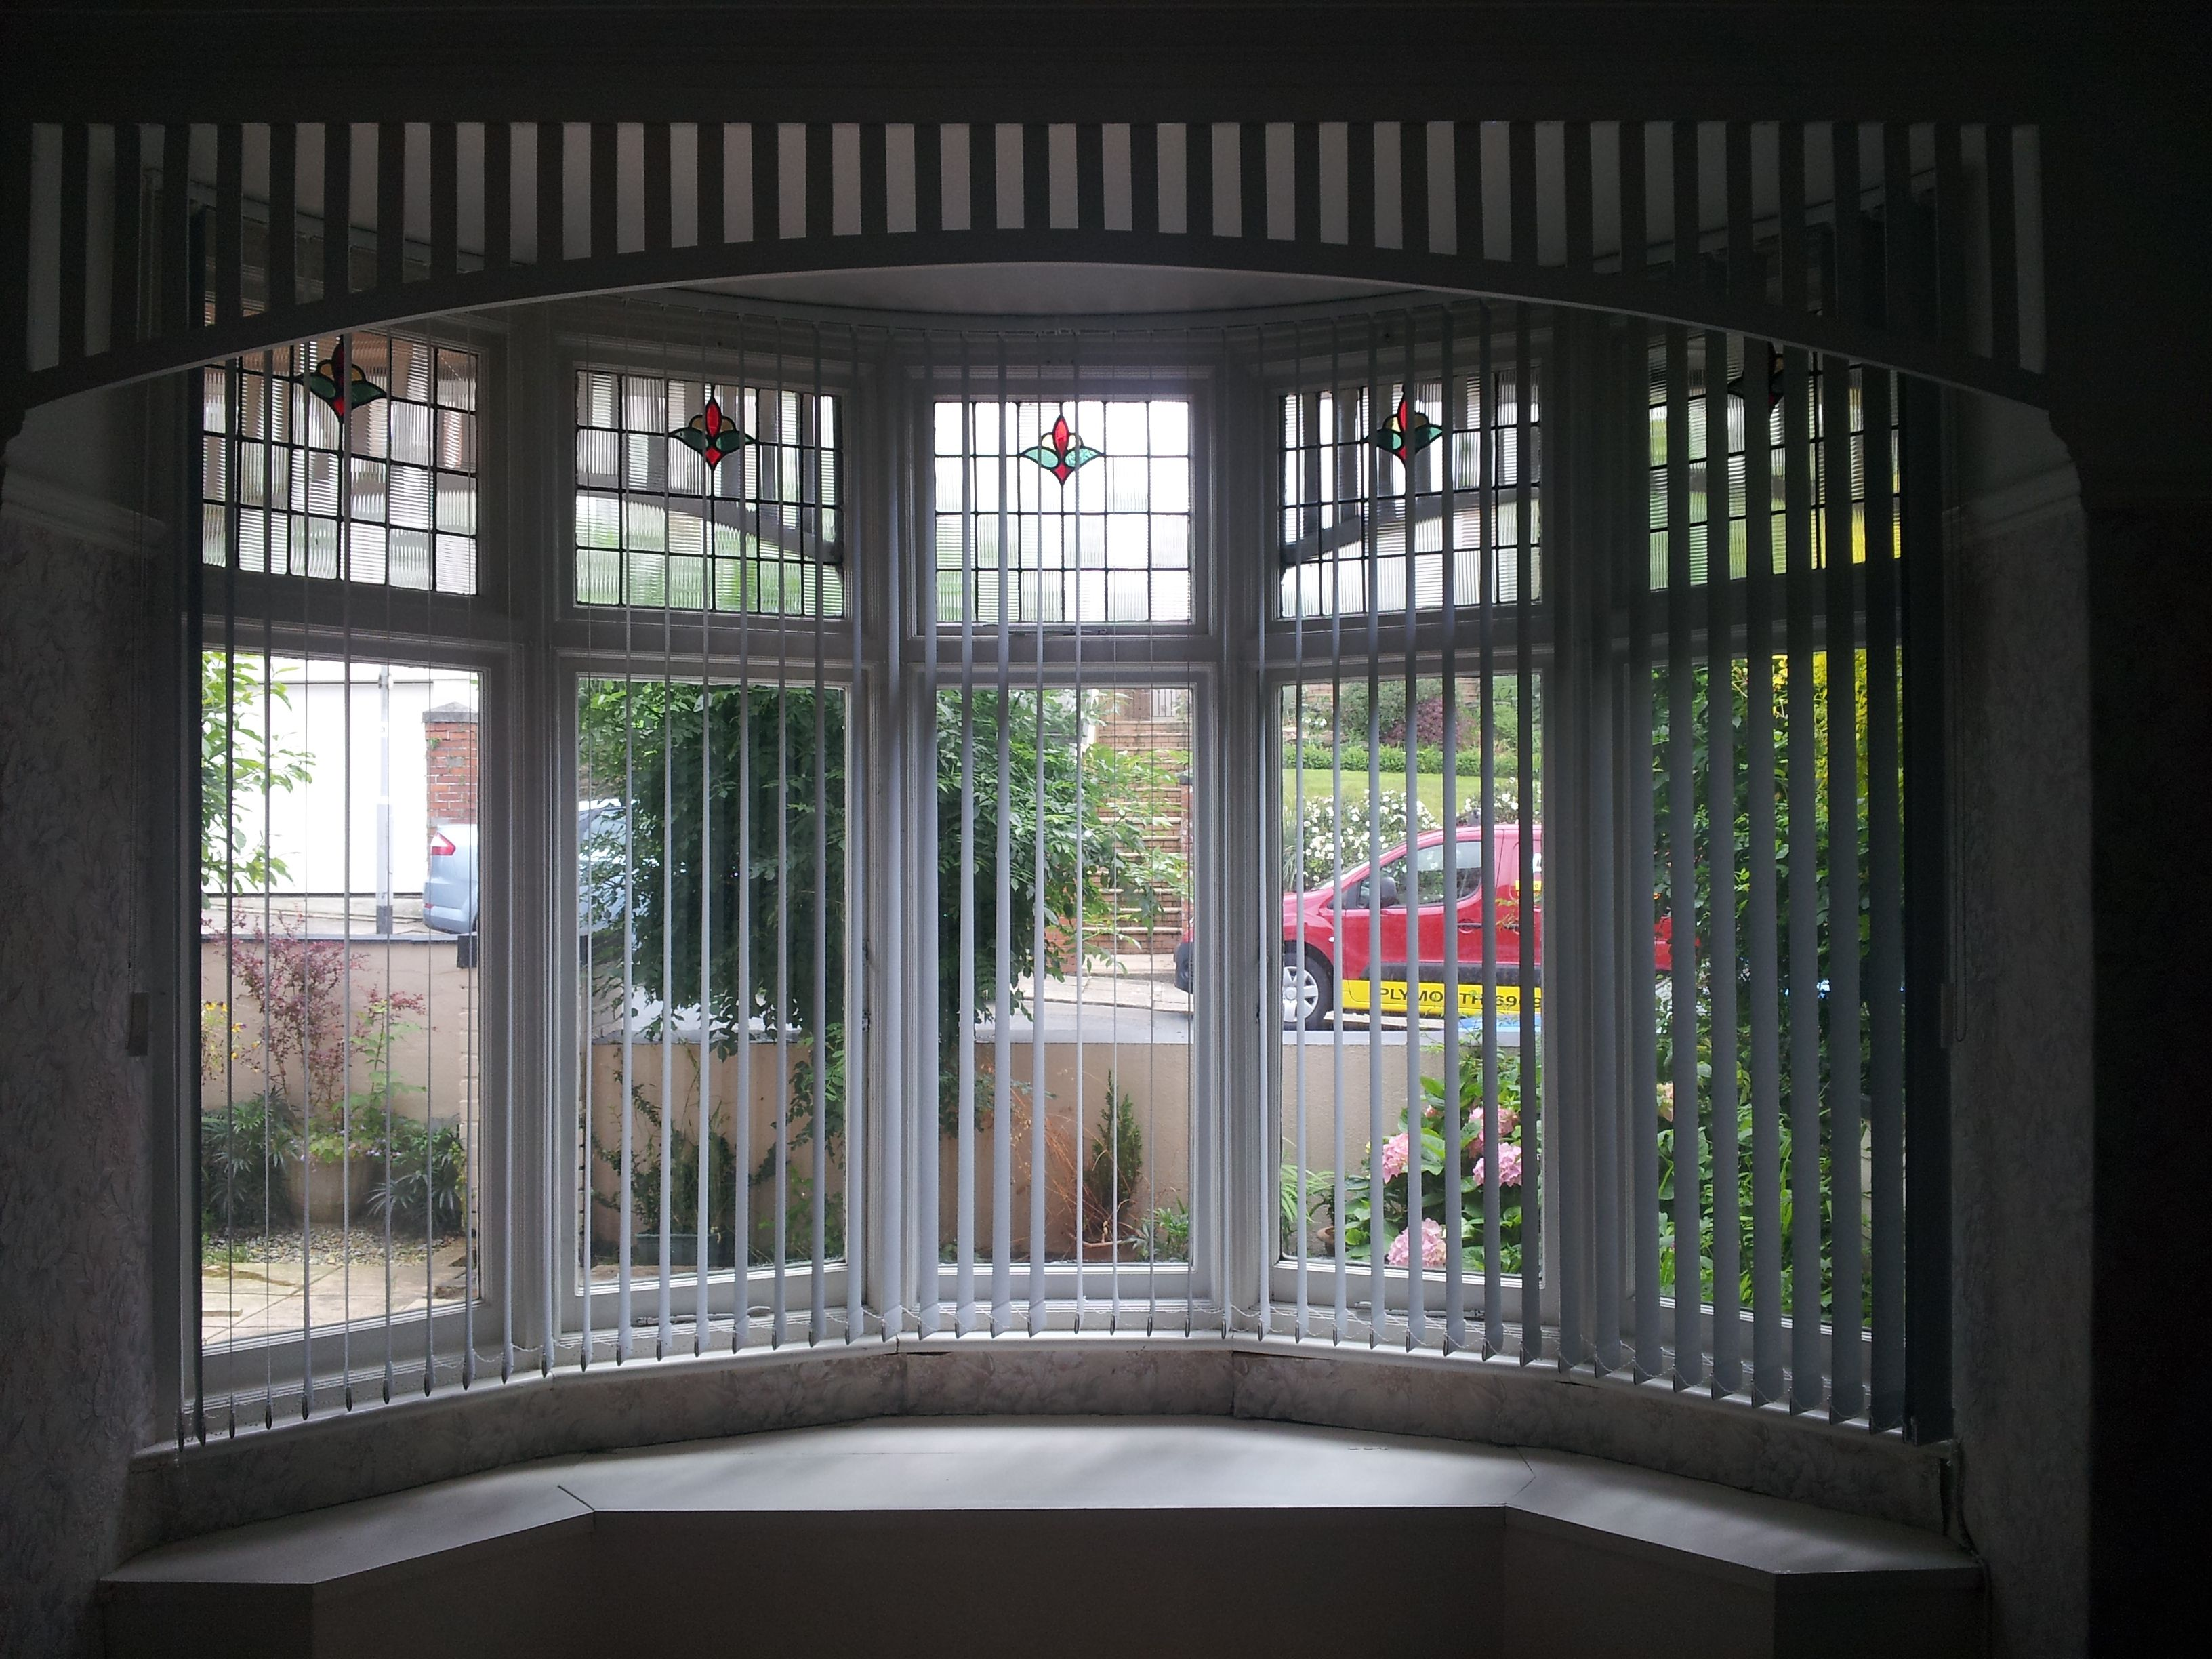 Blinds for curved windows - Vertical Window Blinds Curved Vertical Blinds Installed Into A Curved Bay Window Here In Plymouth By Blindology Blinds Of Plymouth